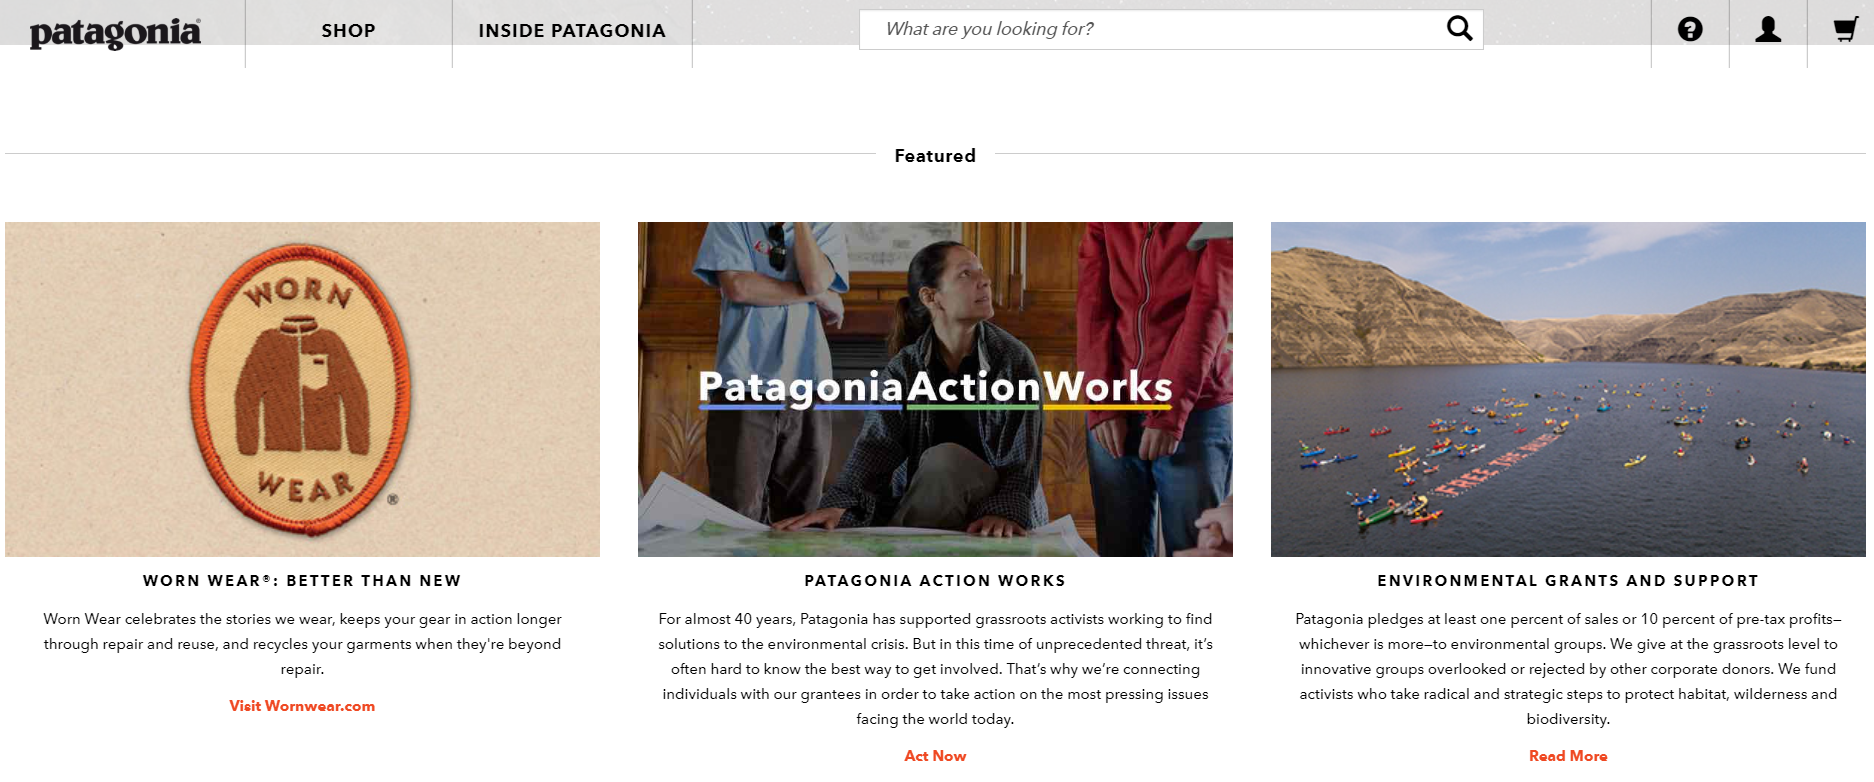 Patagonia Official Website ⓒPatagonia